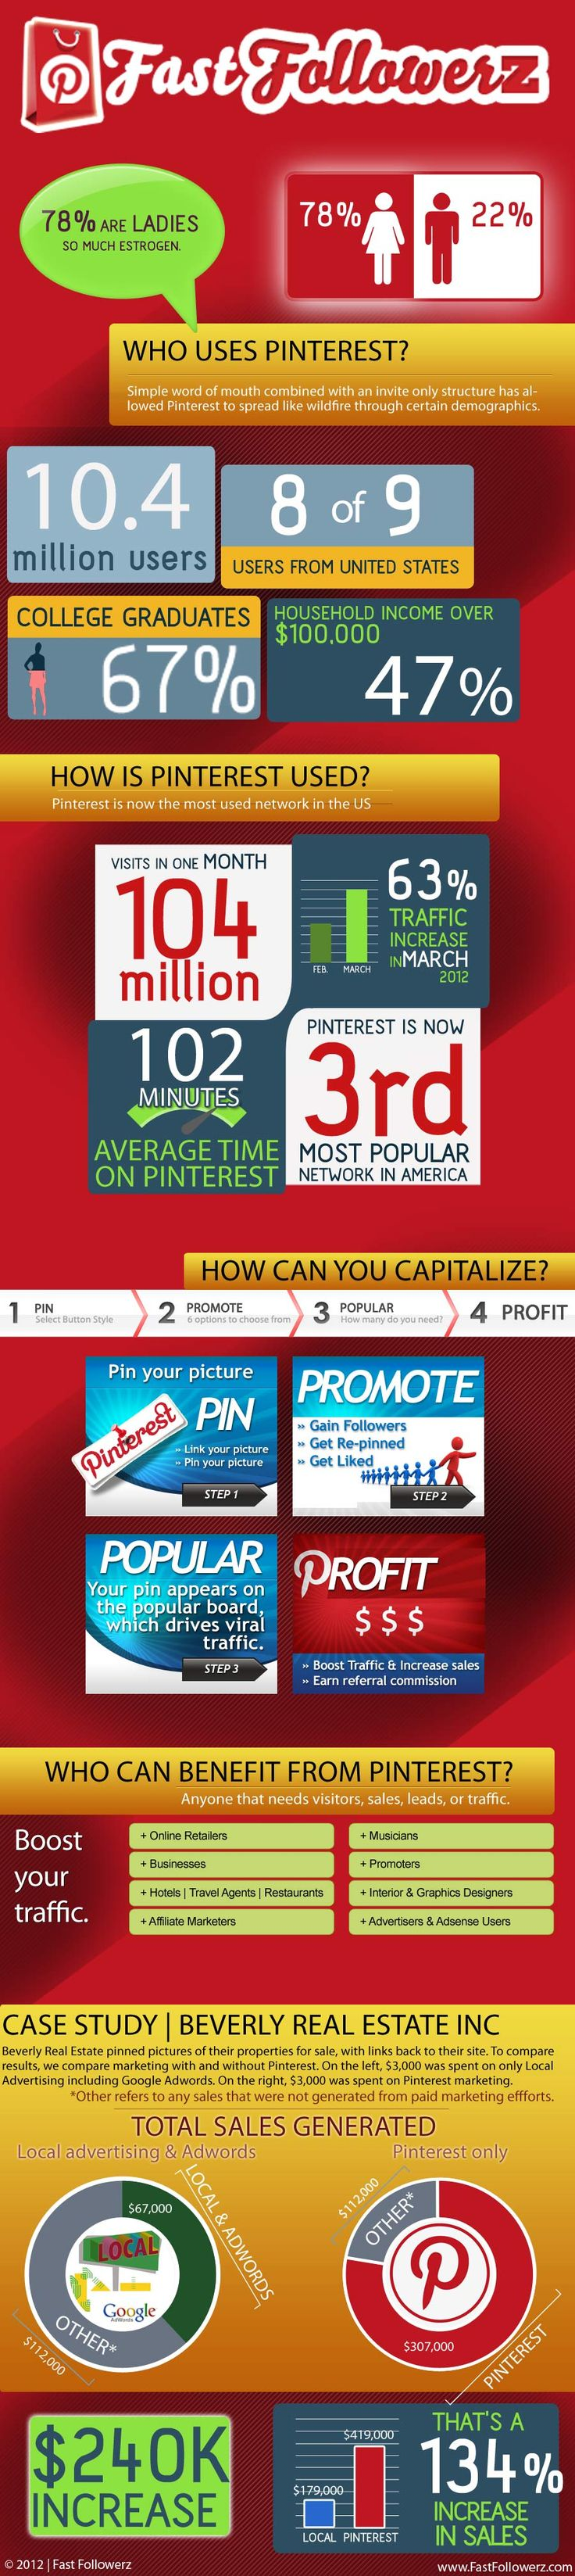 Awesome infographic that shows how valuable Pinterset followers and re-pins are for SEO.: Social Media Marketing, Internet Marketing, Cases Study, Fast Follow, Facts, Pinterest Infographic, Pinterest Follow, Socialmedia, Awesome Infographic